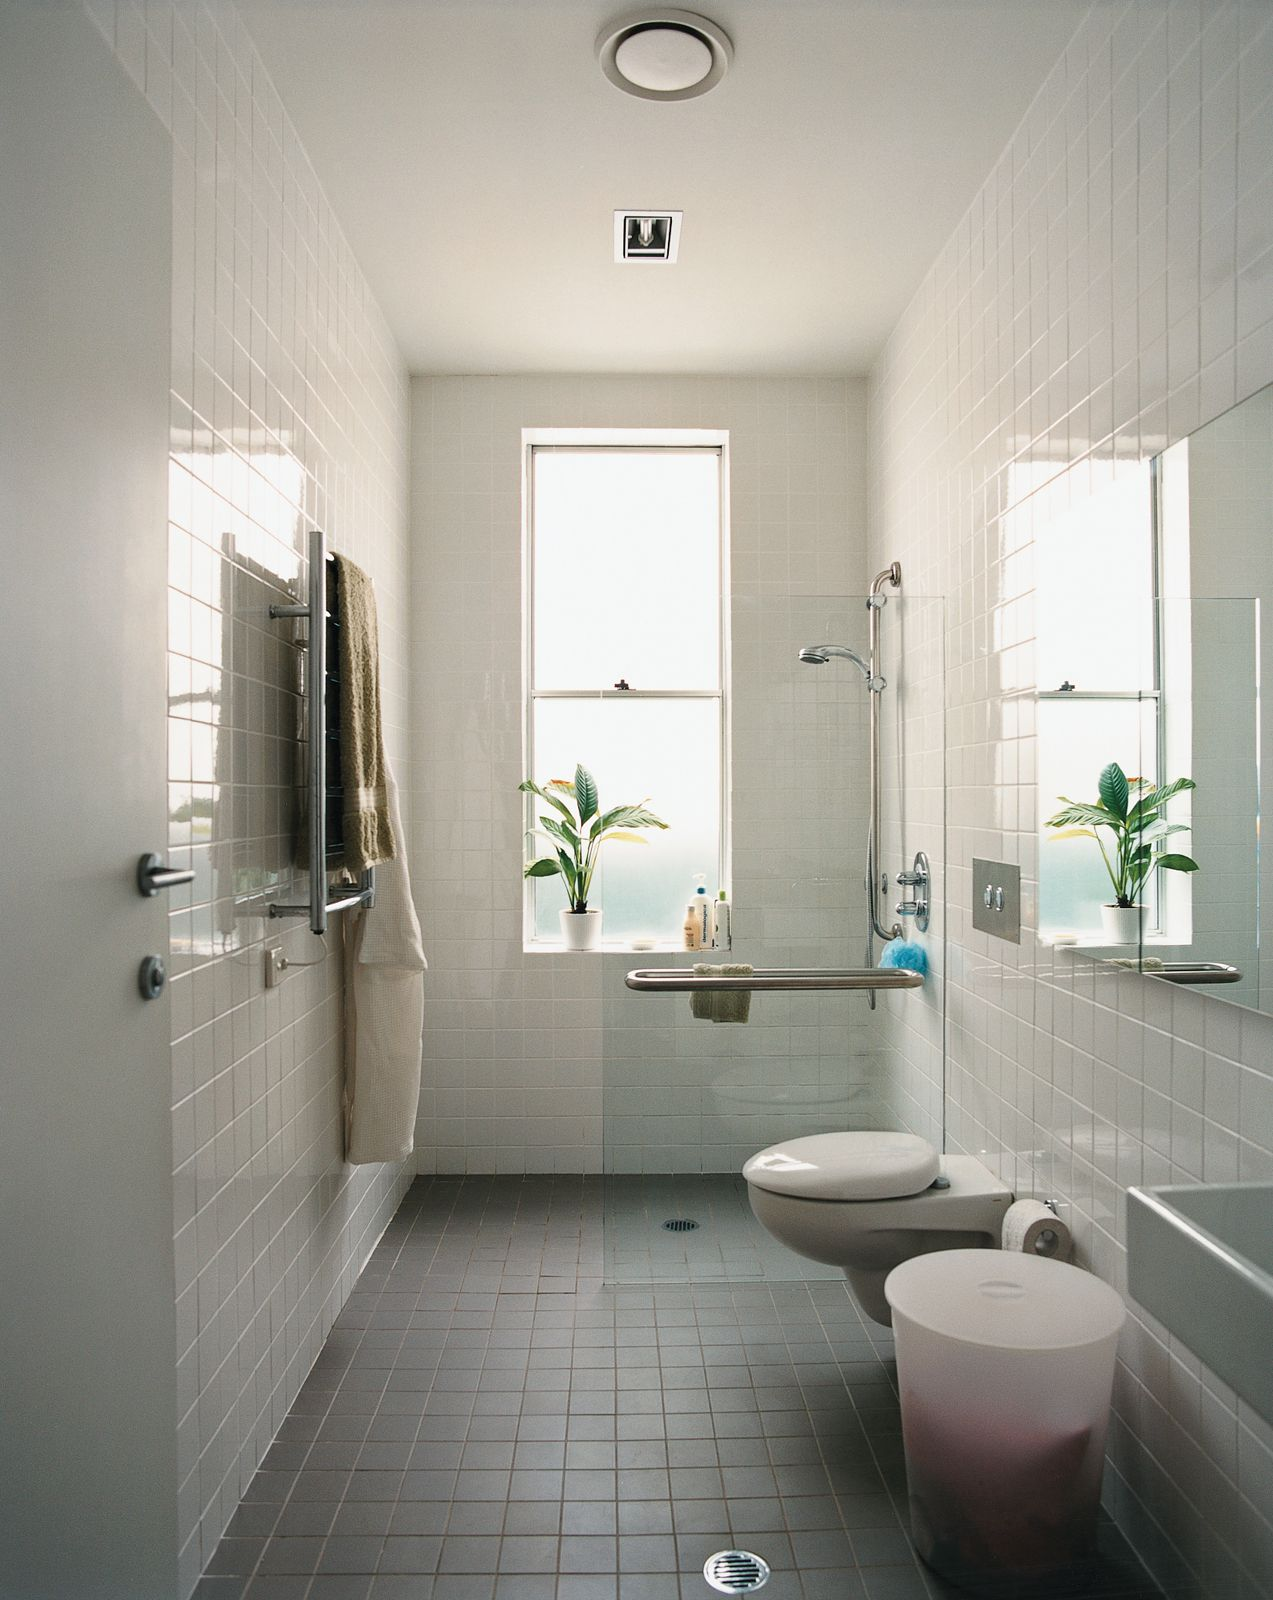 Articles About 12 Tips Tiny Bathrooms On Dwell Com Small Narrow Bathroom Tiny Bathrooms Narrow Bathroom